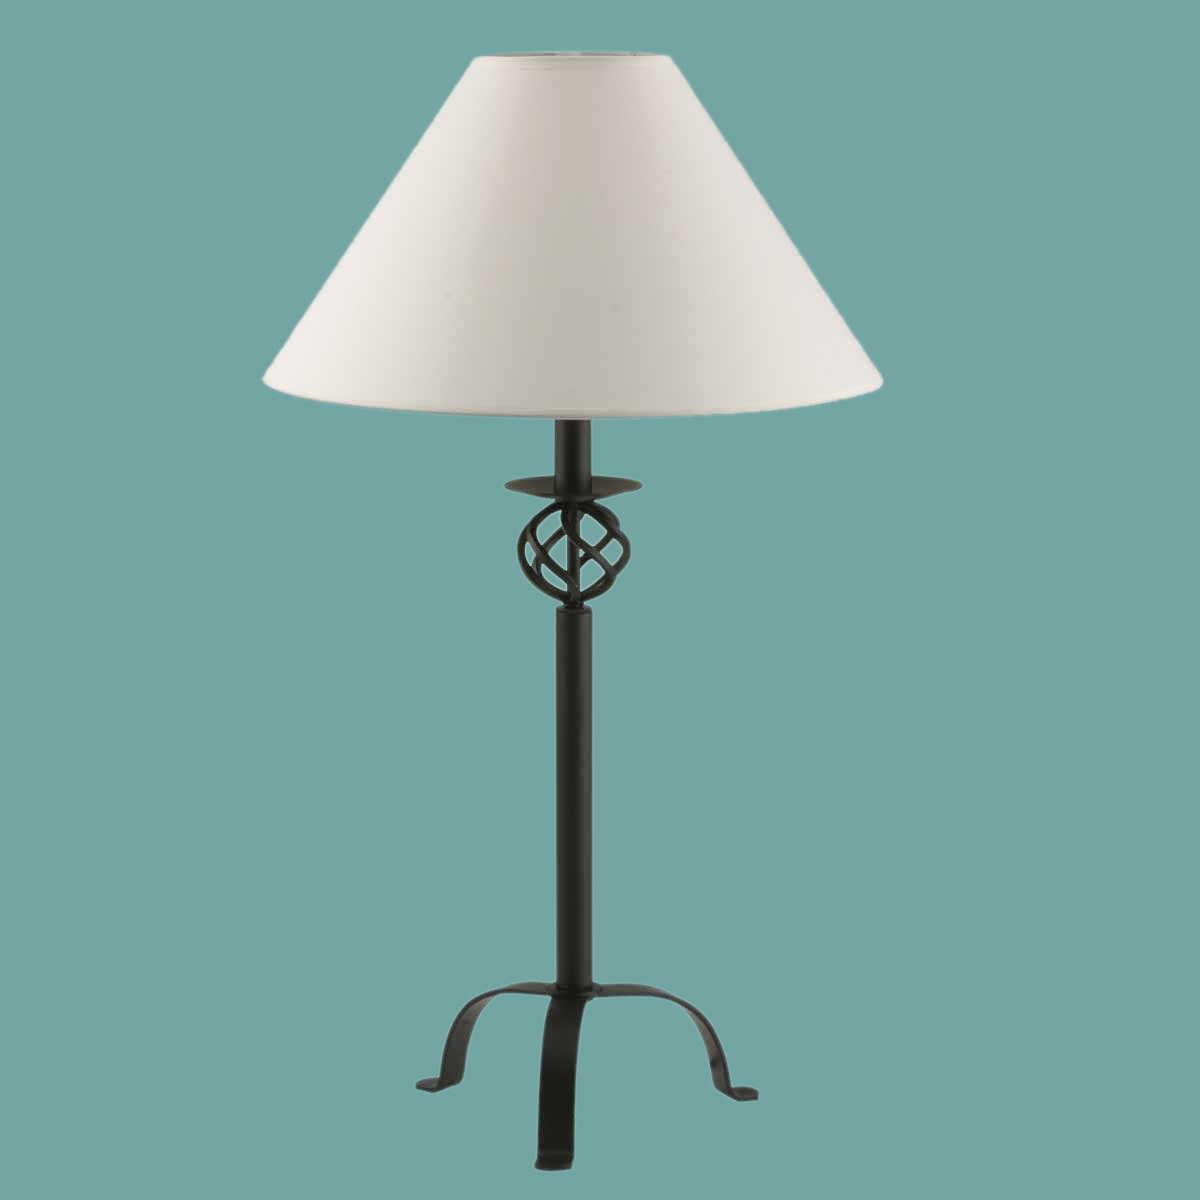 lamps itemno 99969 item name table lamps black wrought iron table lamp. Black Bedroom Furniture Sets. Home Design Ideas